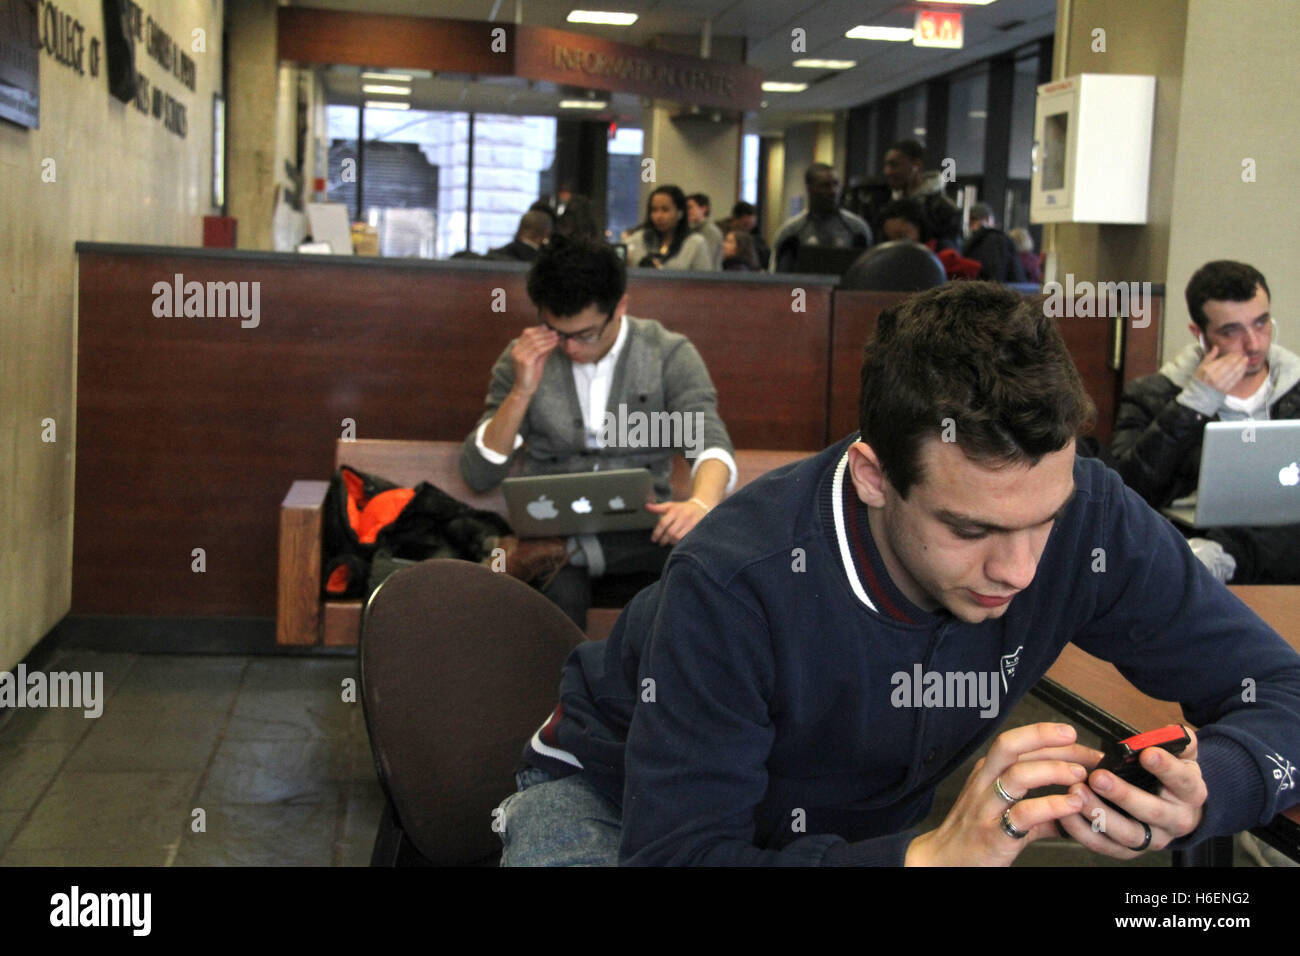 Young people on digital gadgets inside restaurant - Stock Image